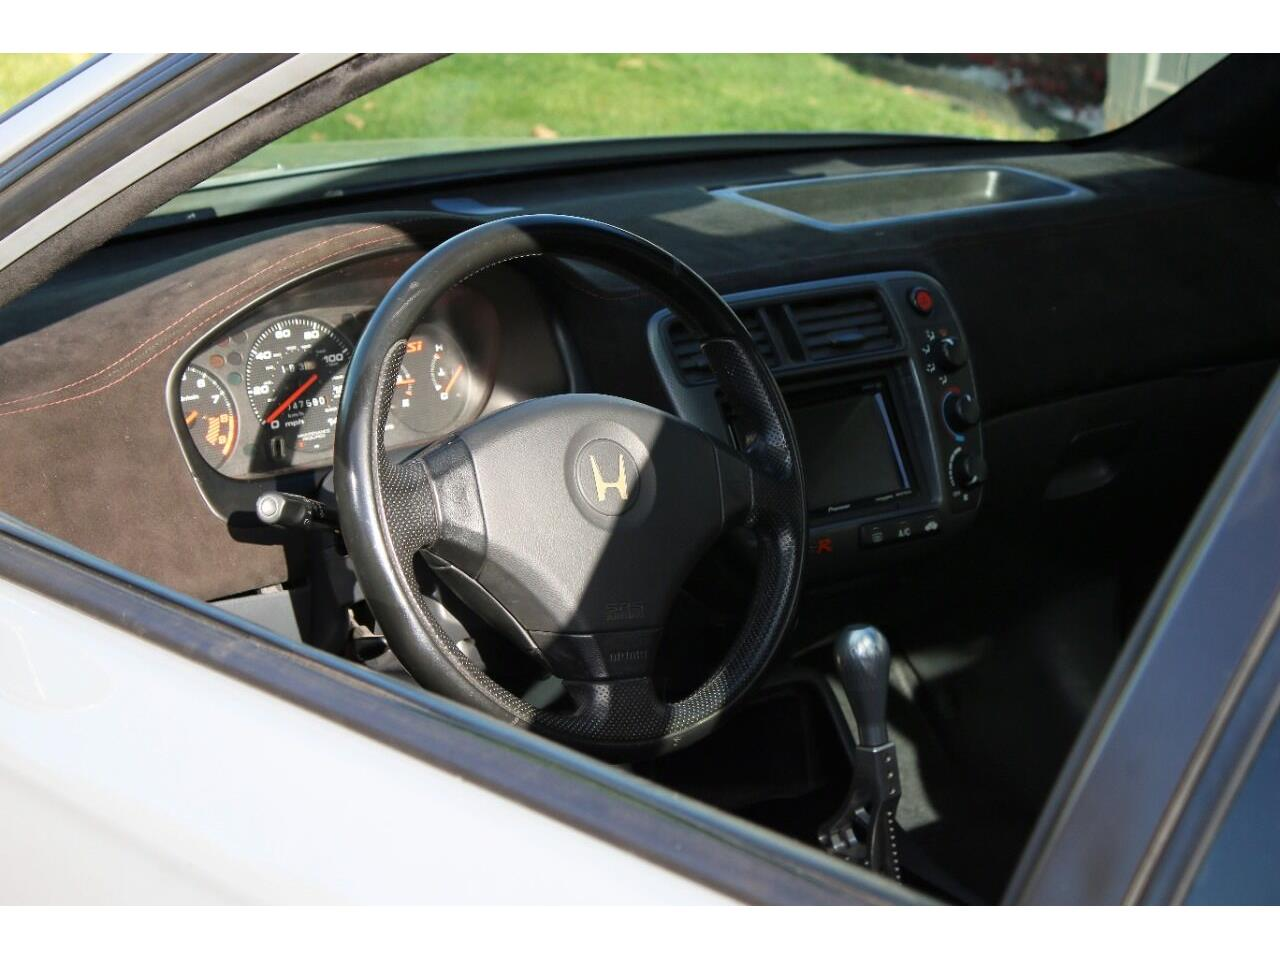 2000 Honda Civic (CC-1420587) for sale in Hilton, New York